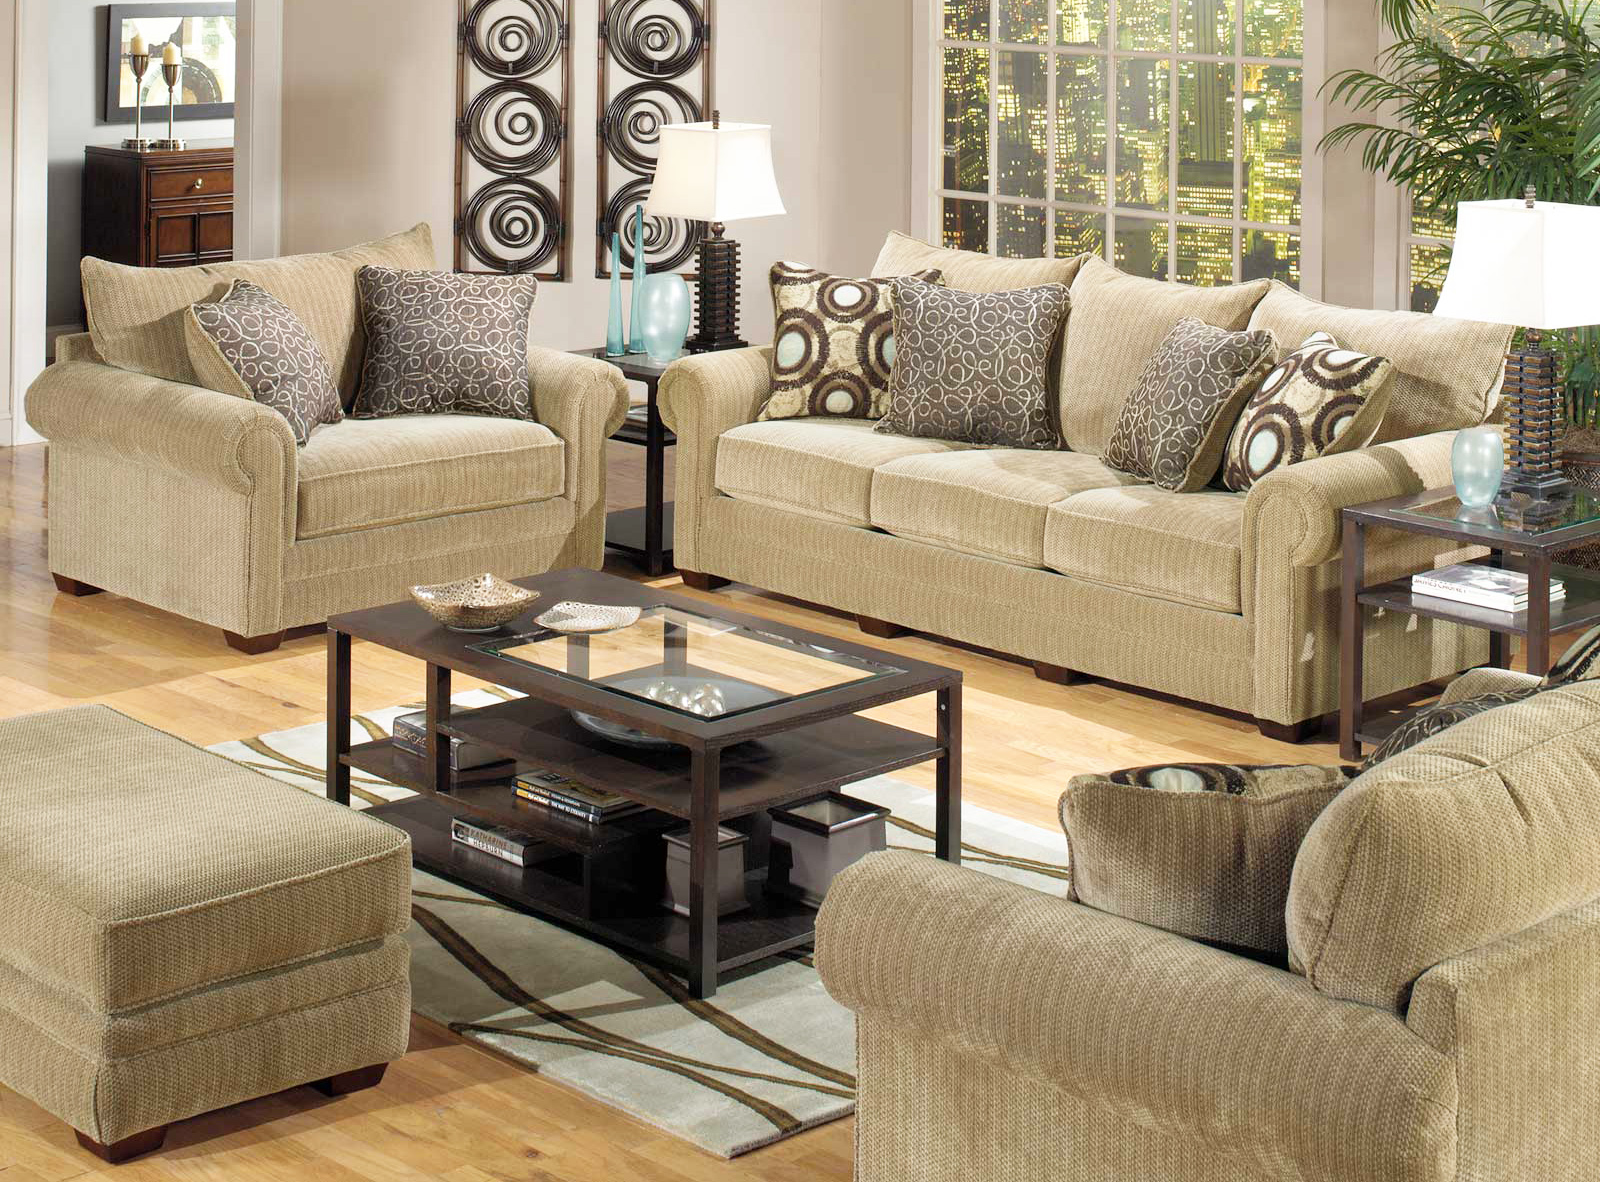 Three Furniture Arrangement Tips That Will Make Room Looks